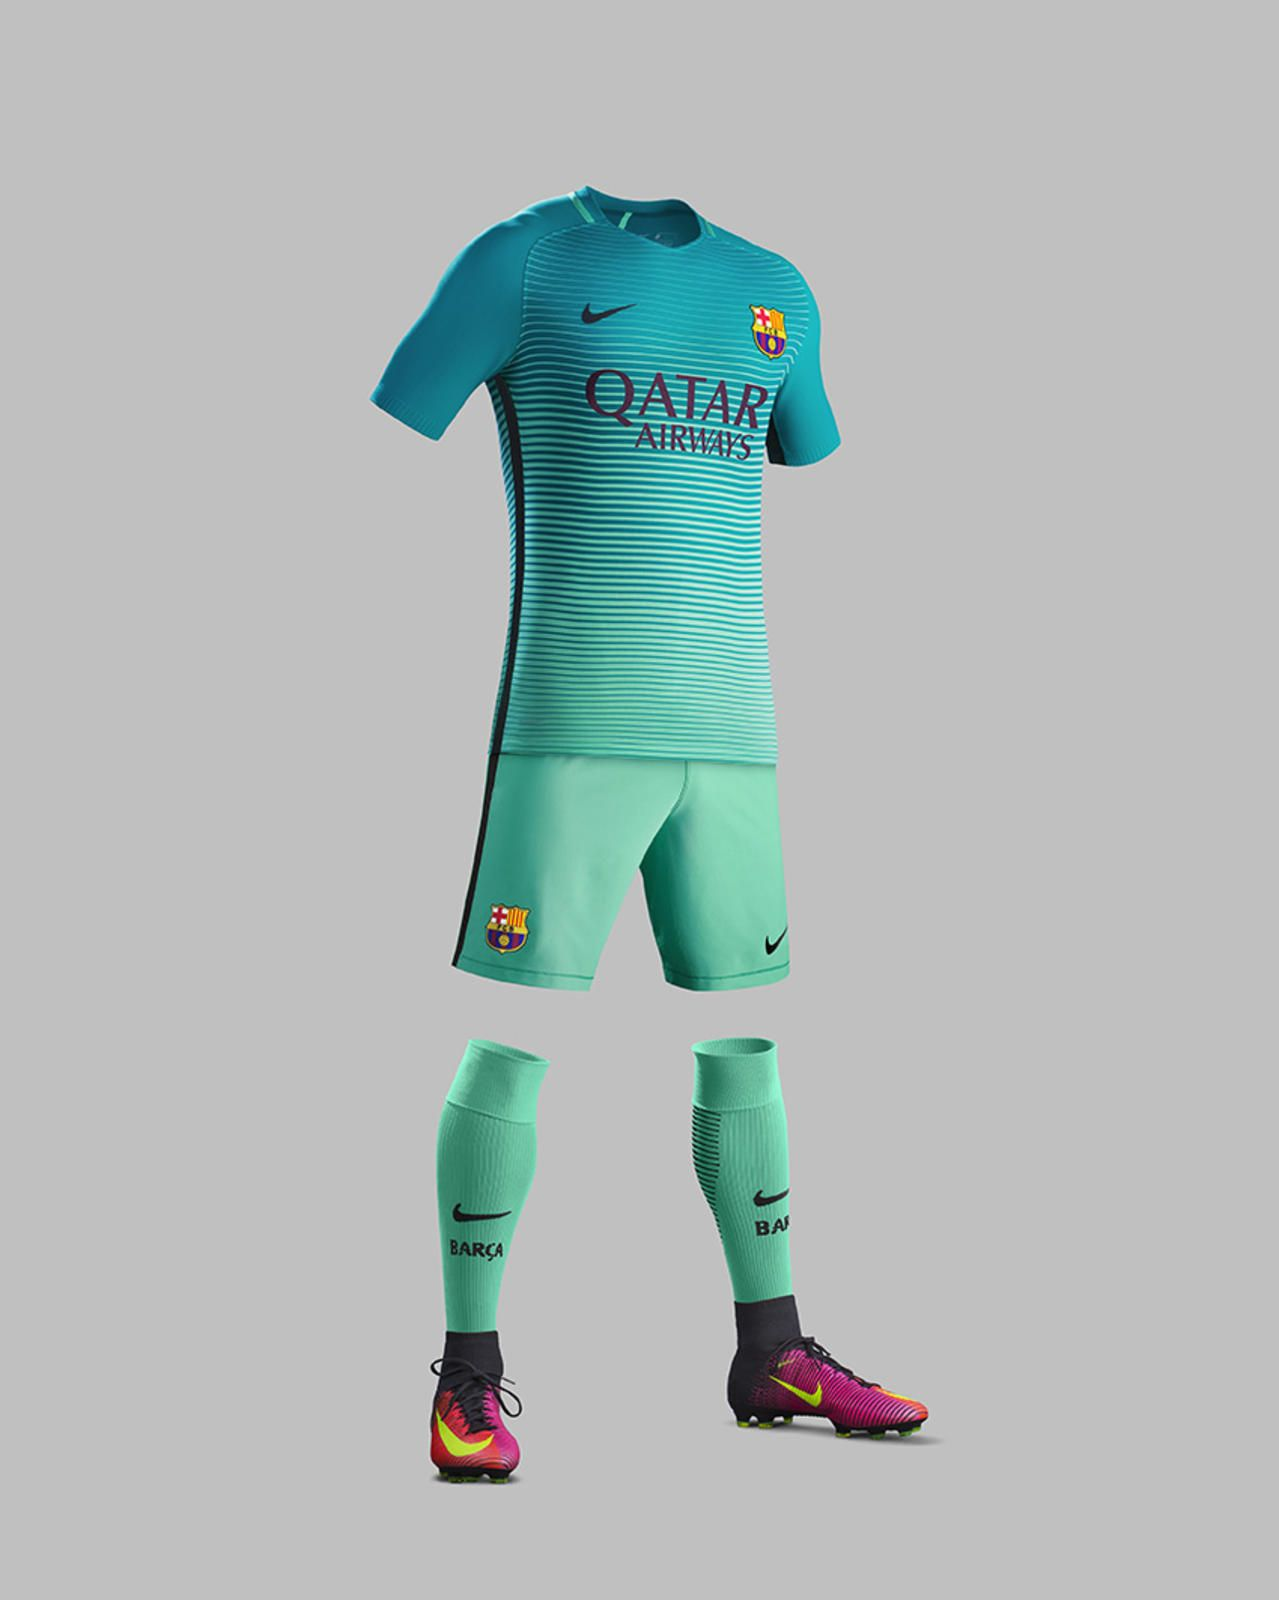 0e9eee7a51bf4 Nike News - F.C. Barcelona Third Kit 2016-17 Barcelona Third Kit